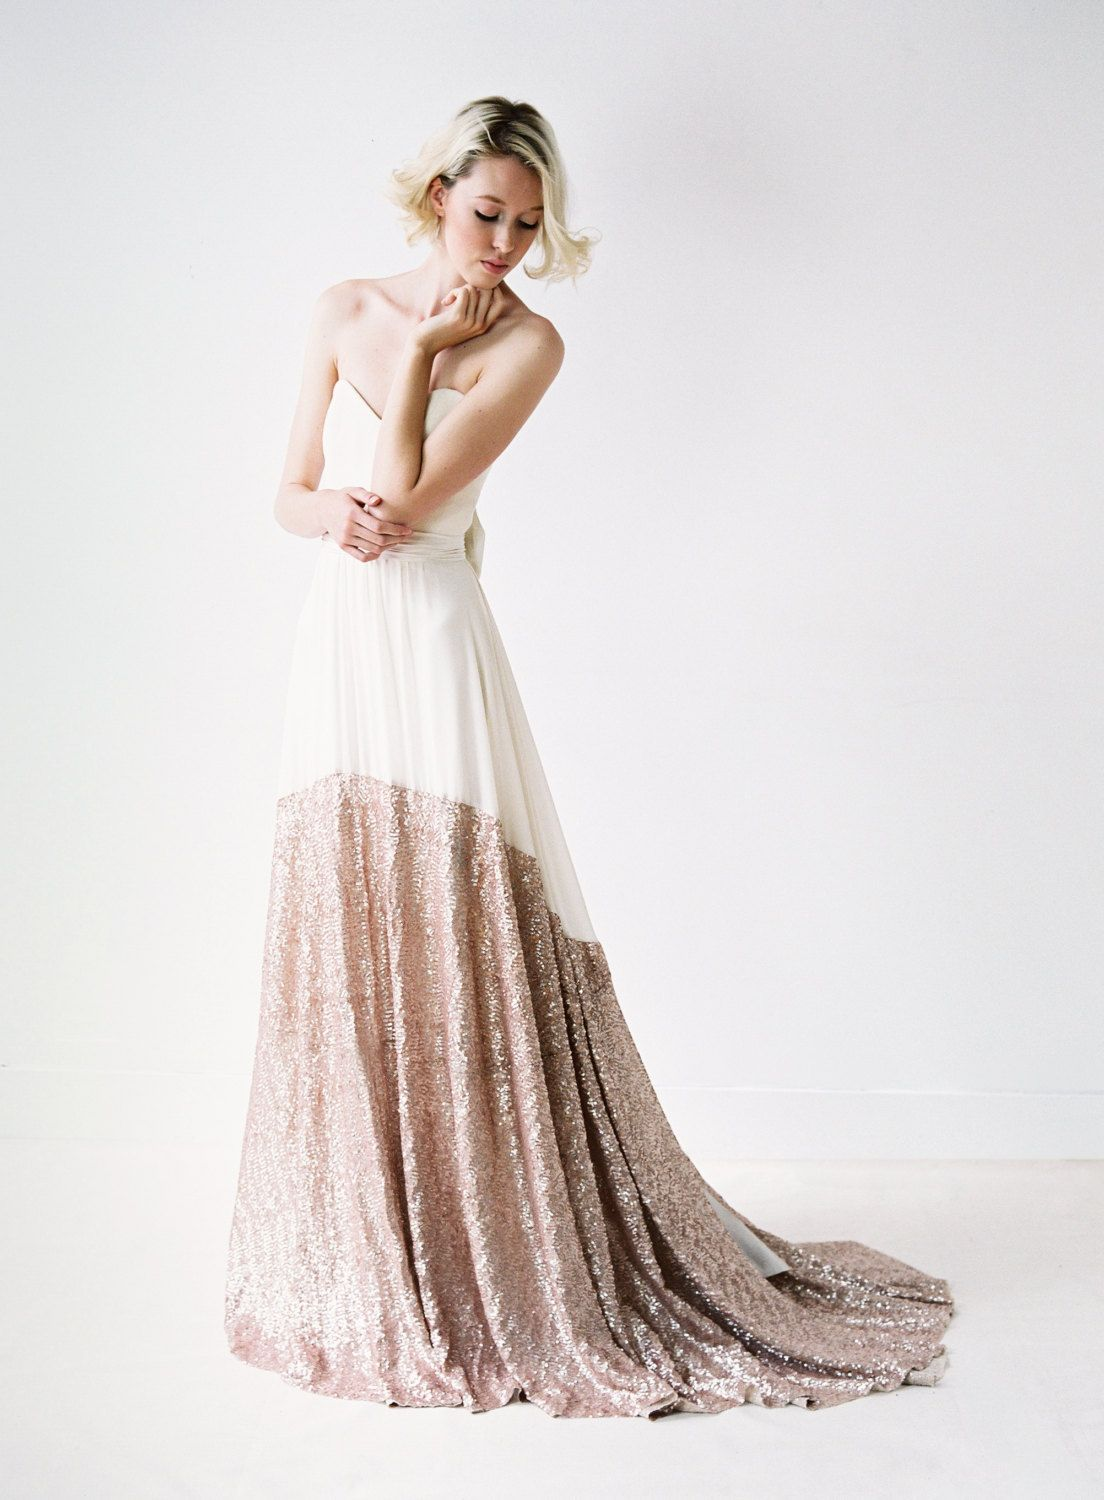 wedding dresses from truvelle | chic vintage brides, wedding dress